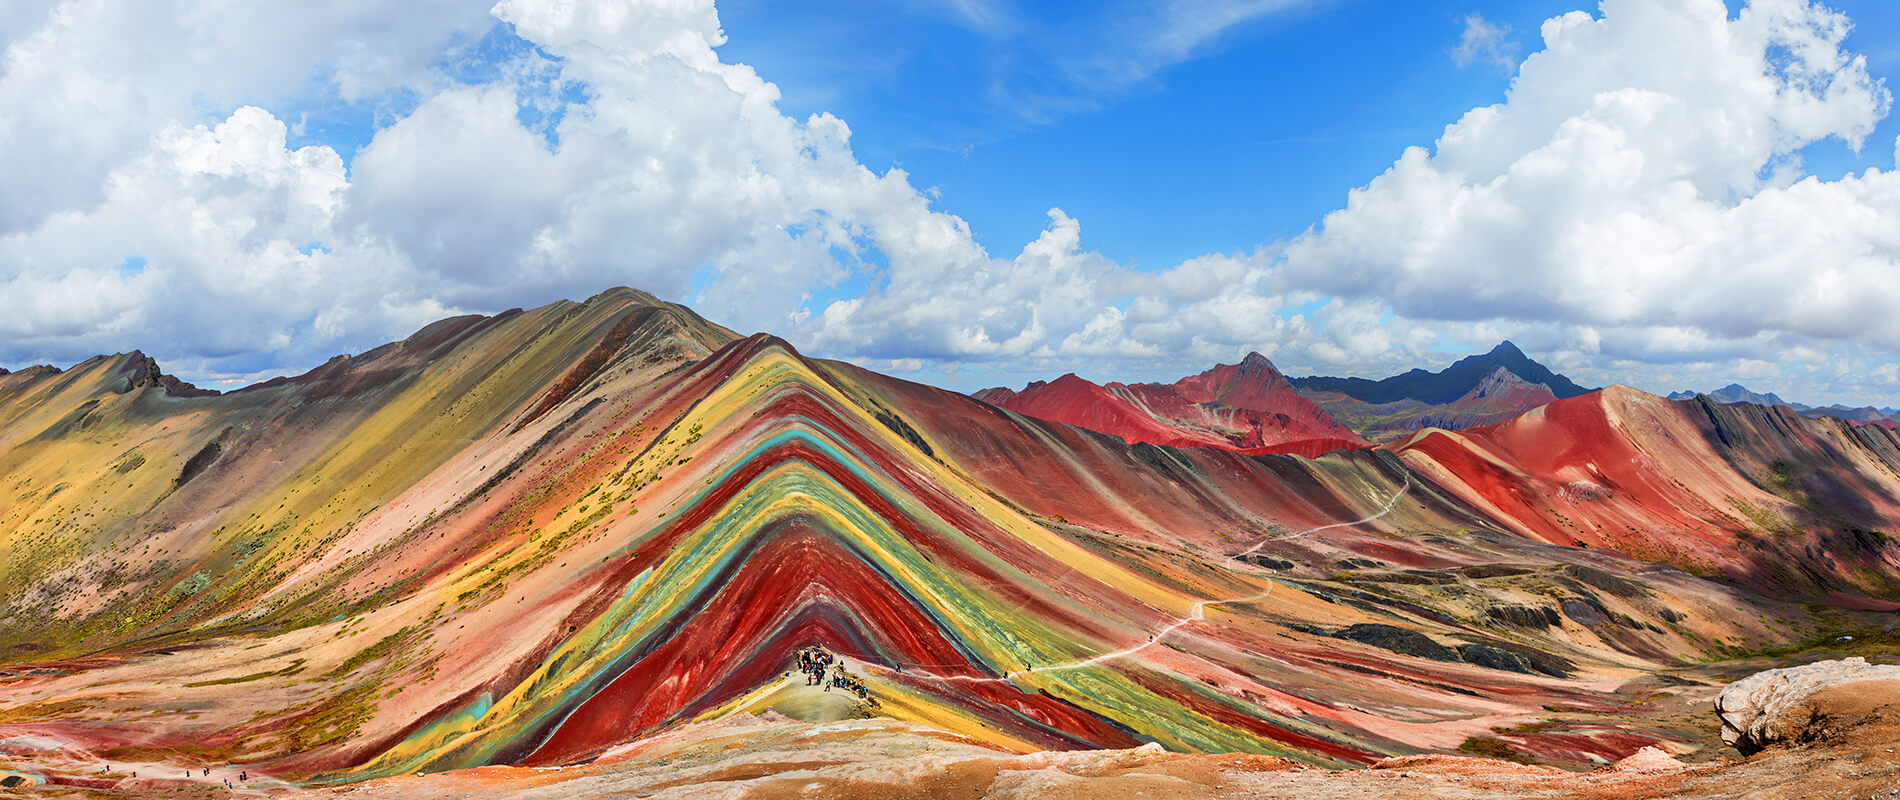 Vinicunca, the Rainbow Mountain of Peru